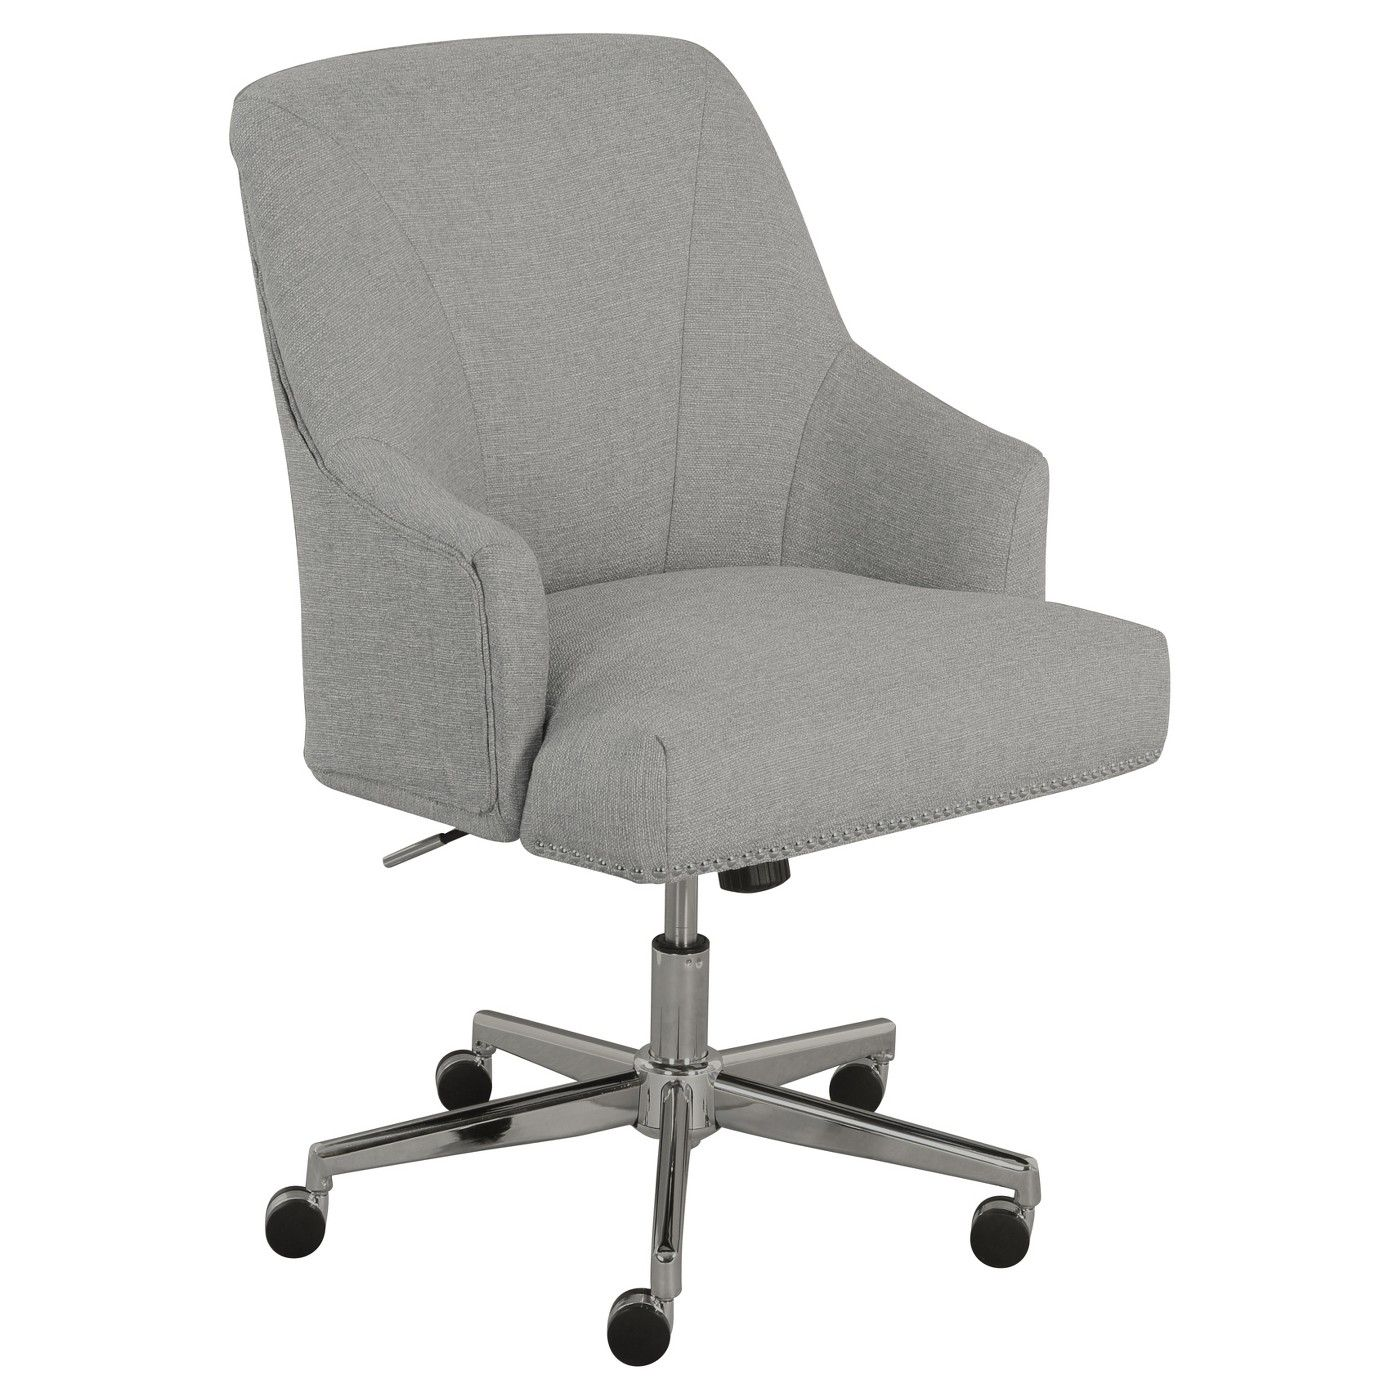 Leighton Home Office Chair Gray Serta image 1 of 4